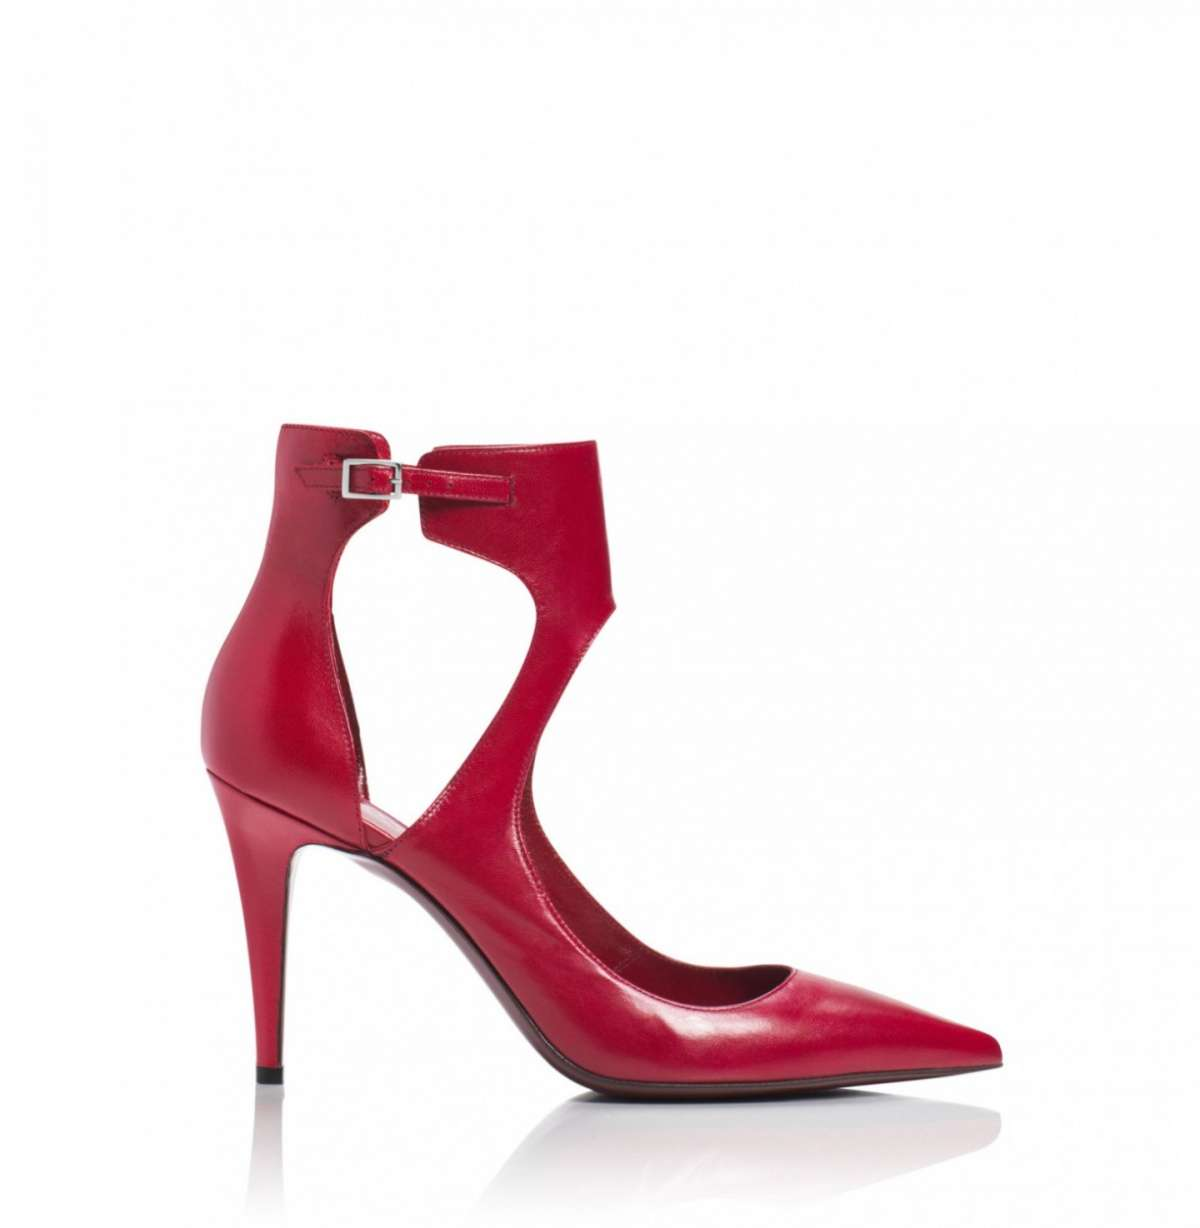 Pumps rosse Tamara Mellon